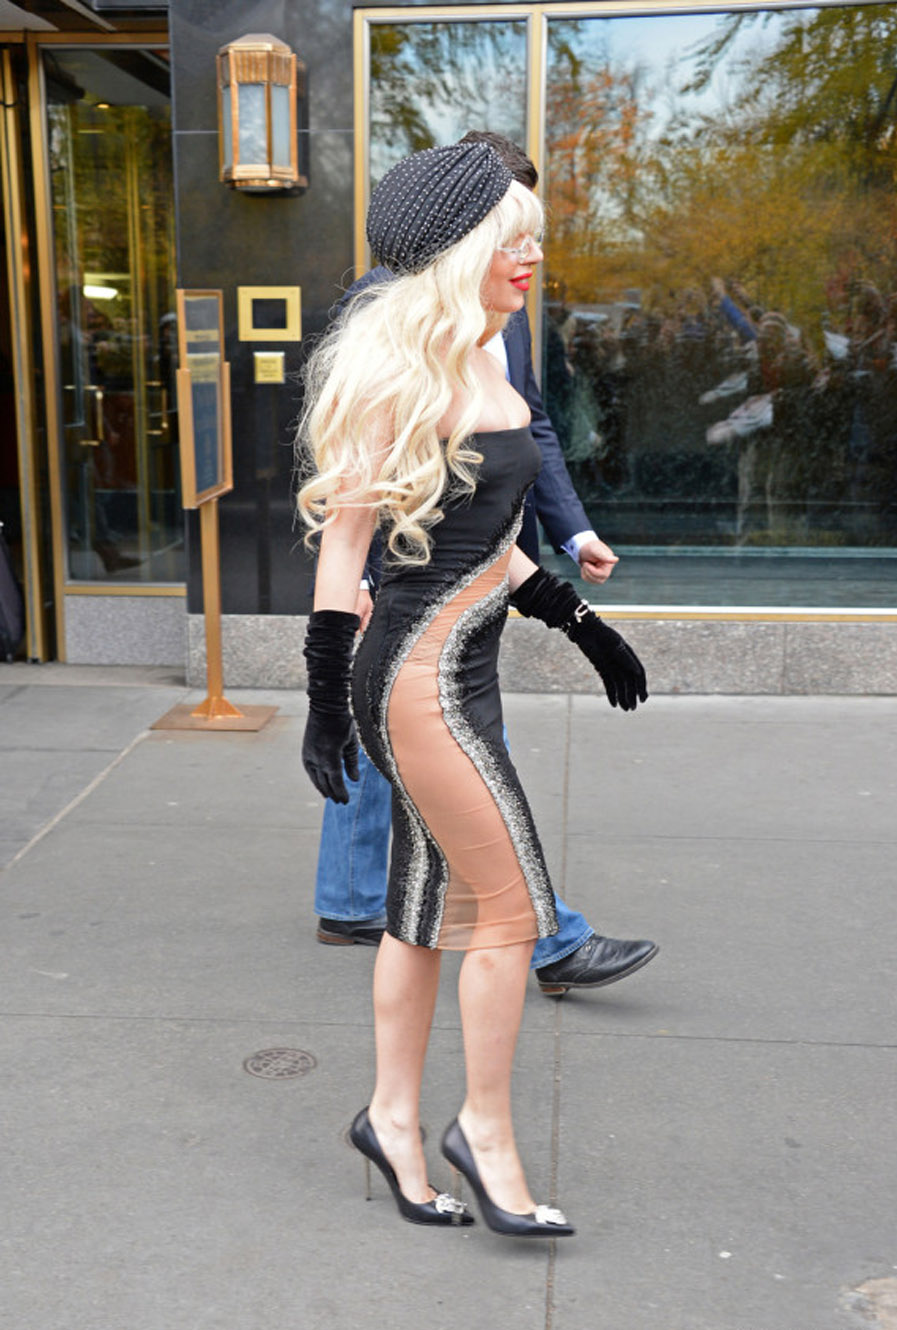 Lady Gaga Isn't Wearing Much For Day Out In New York City 48049